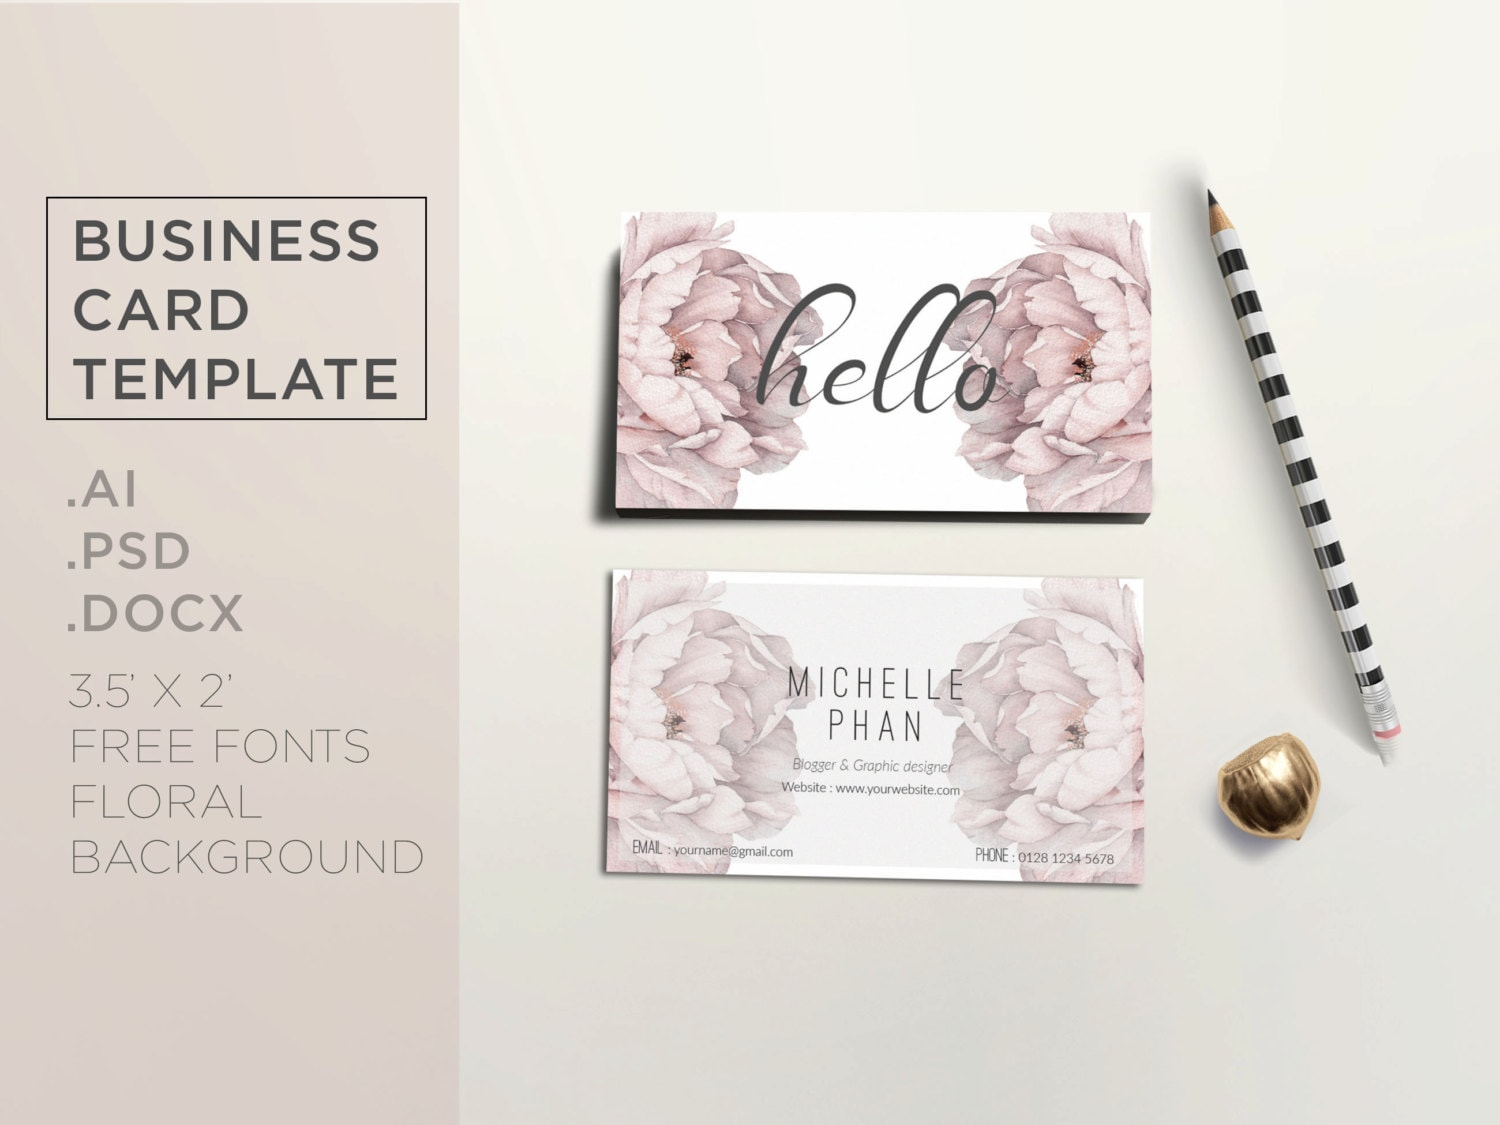 Floral business card template / Elegant business card design